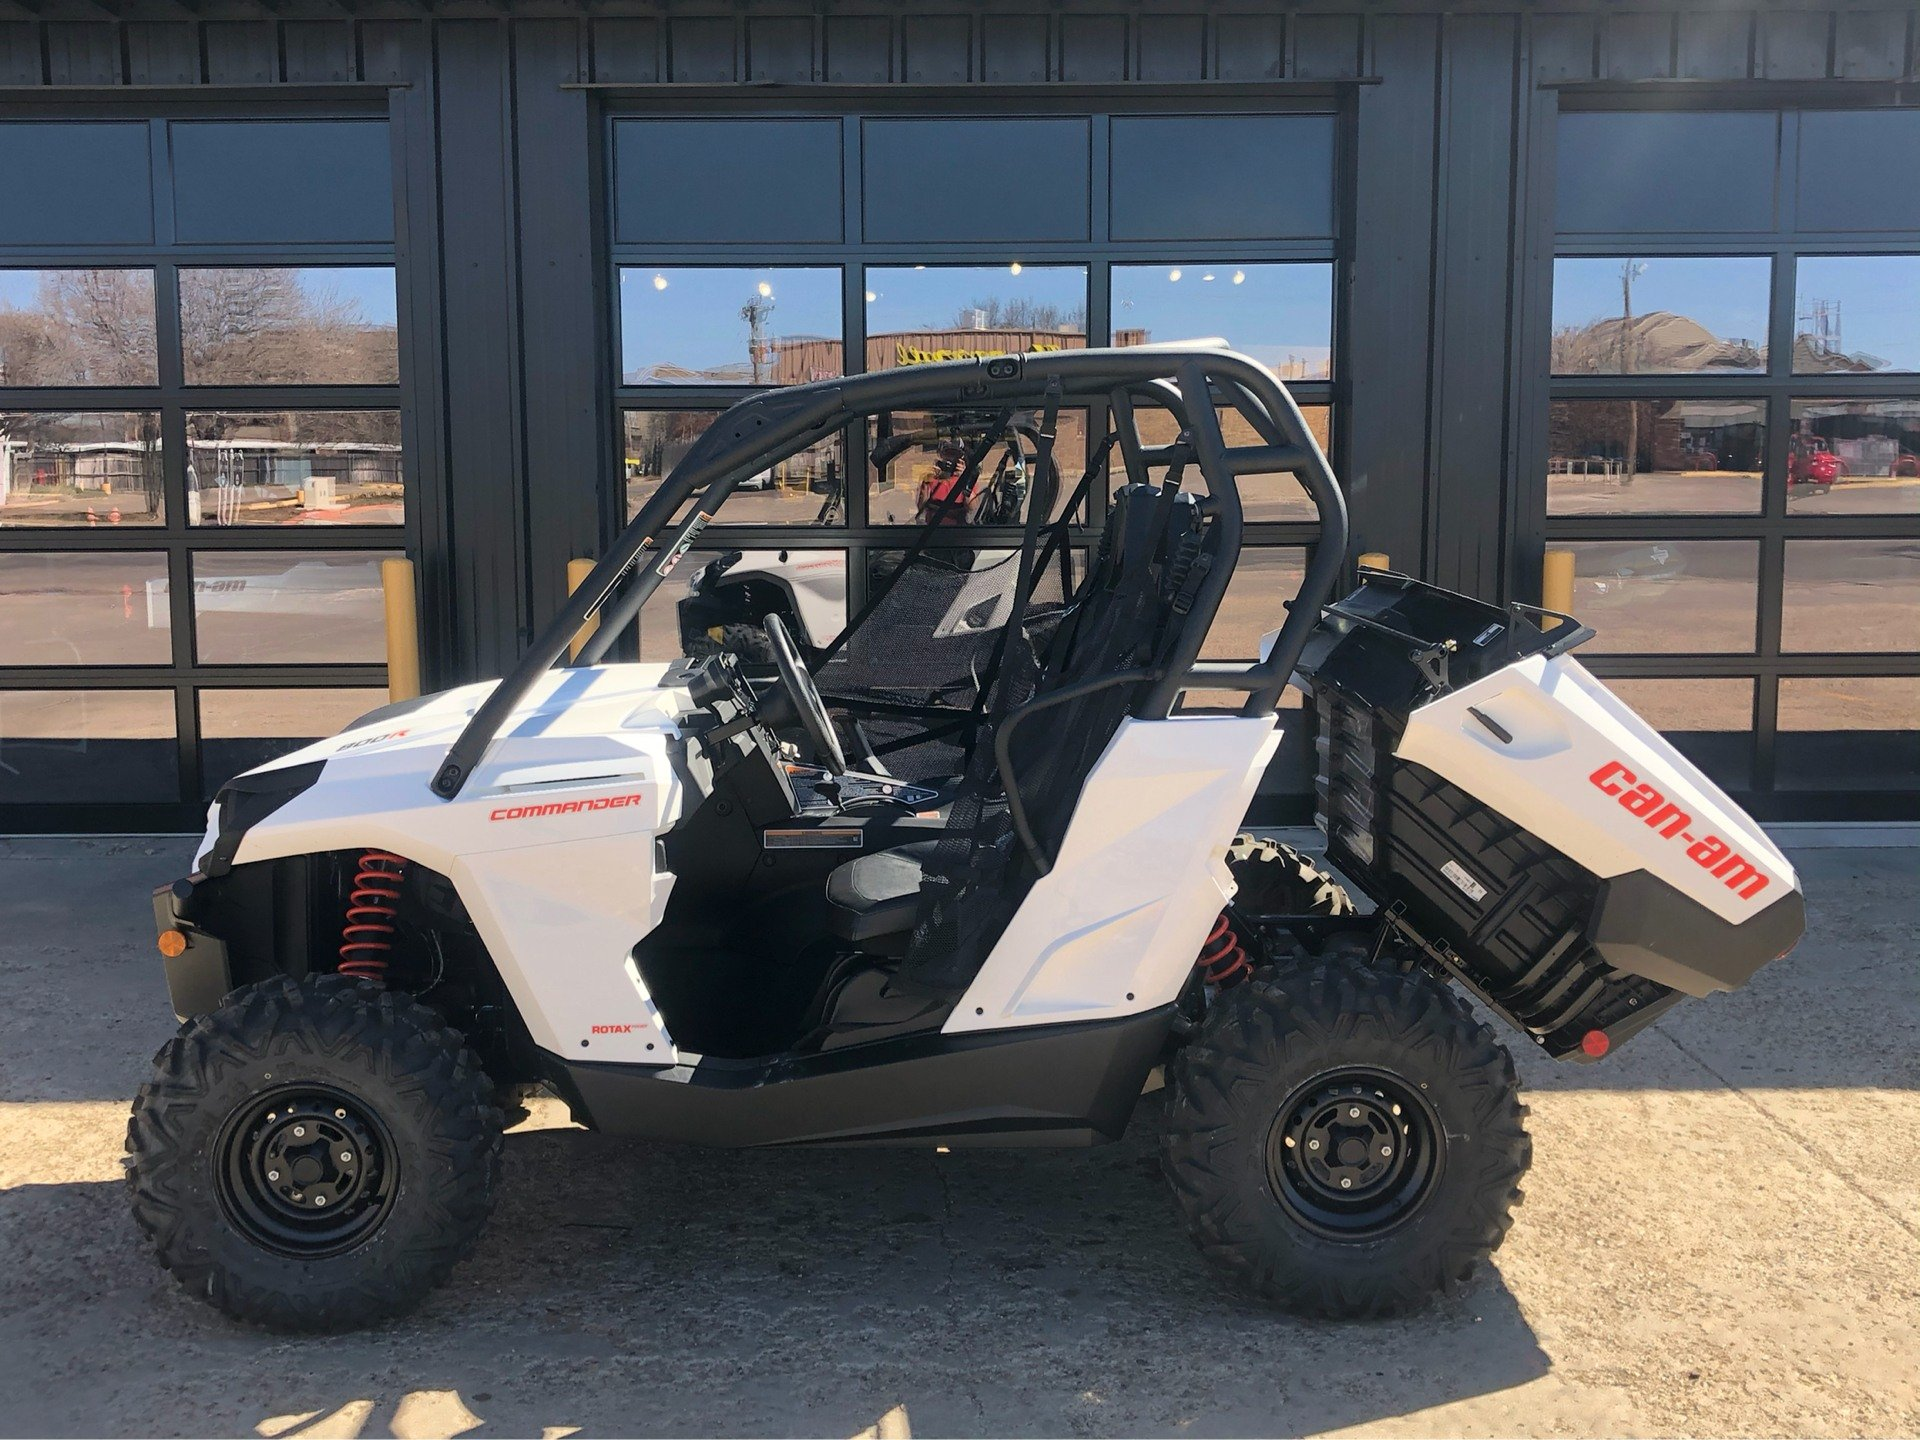 2020 Can-Am Commander 800R in Amarillo, Texas - Photo 4